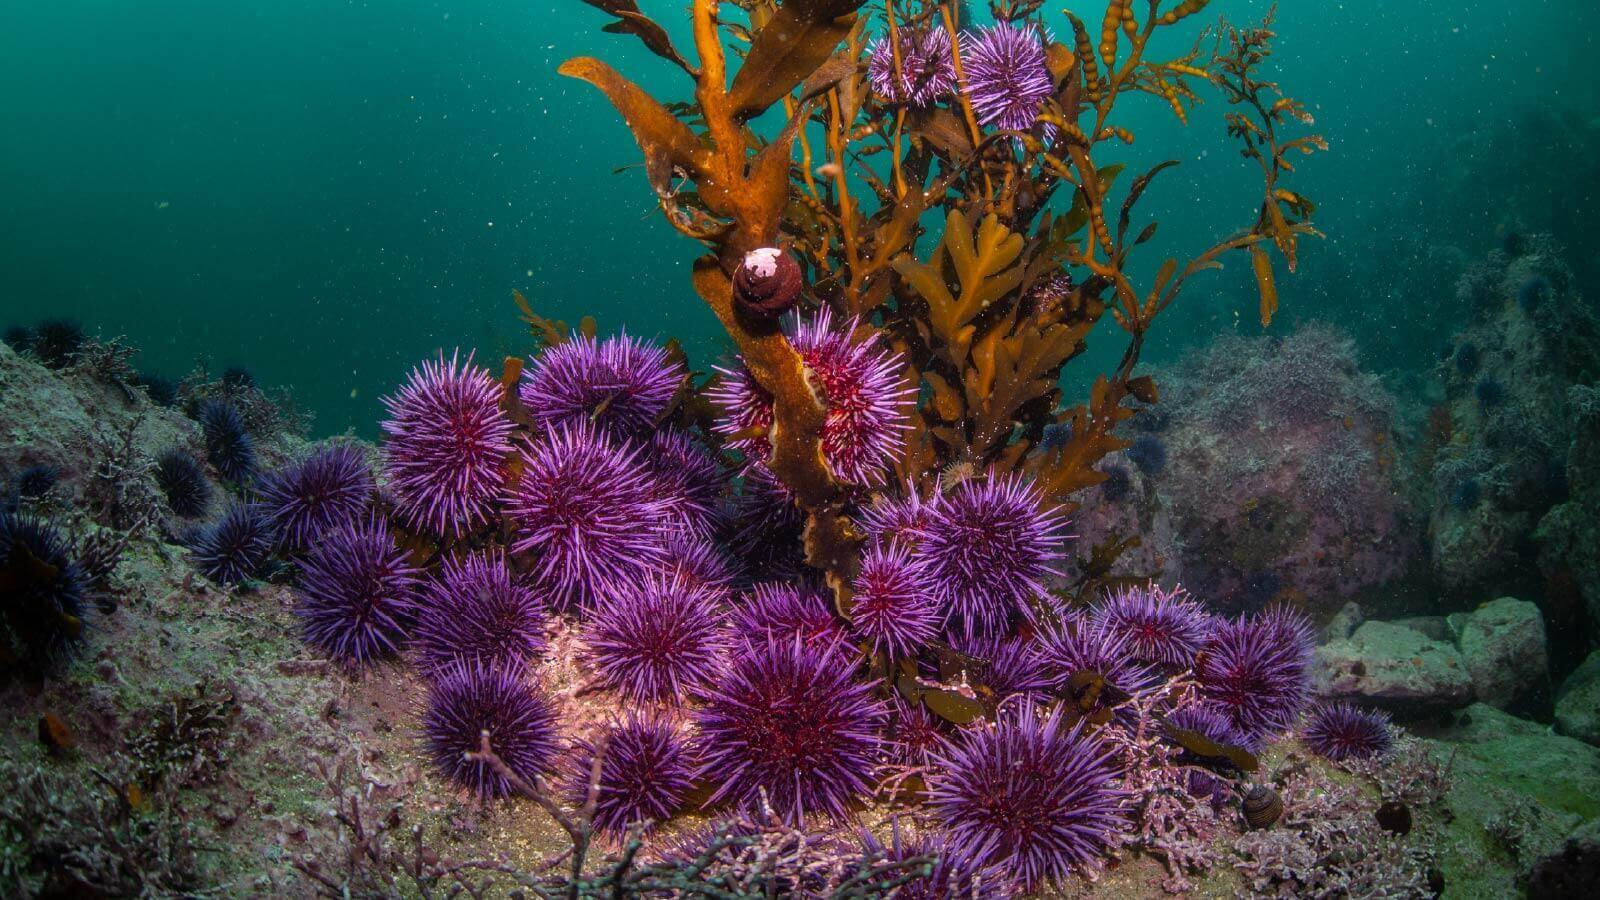 An army of 'zombie urchins' has devastated this underwater forest